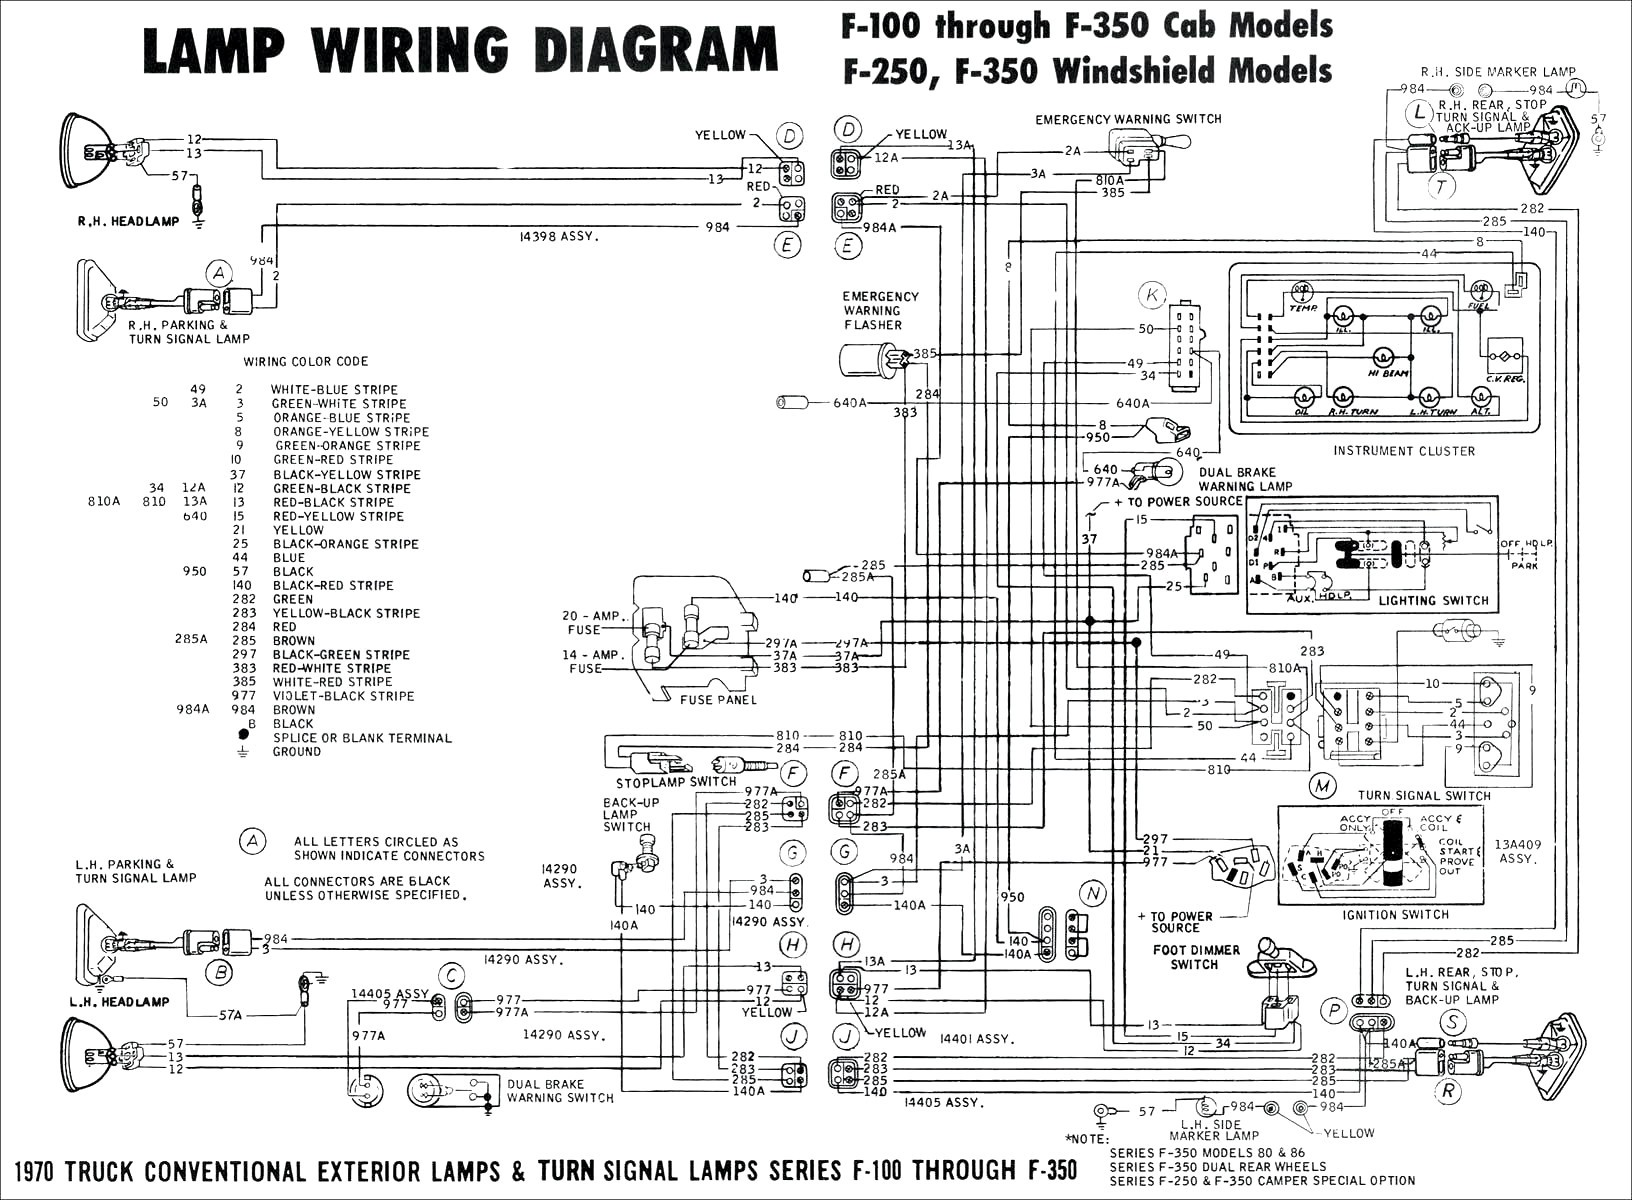 2001 Hyundai Sonata Relay Diagram Electrical Wiring Diagrams 2004 Accent 2006 Turn Signal Car